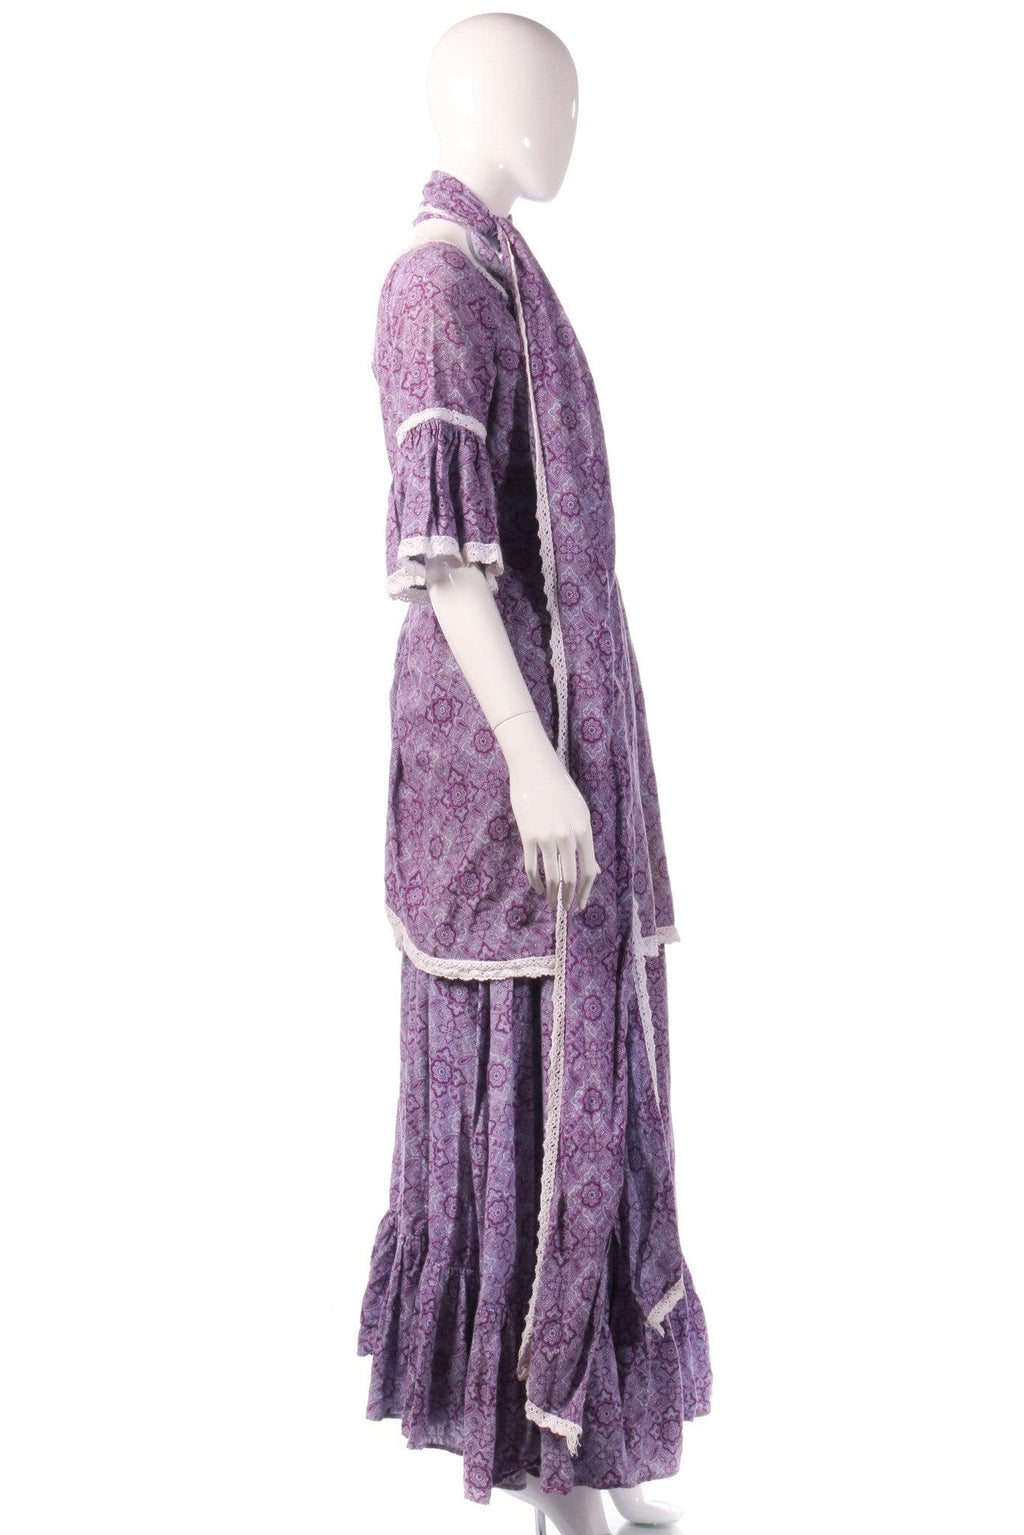 Vintage Laura Ashley purple dress with scarf  side